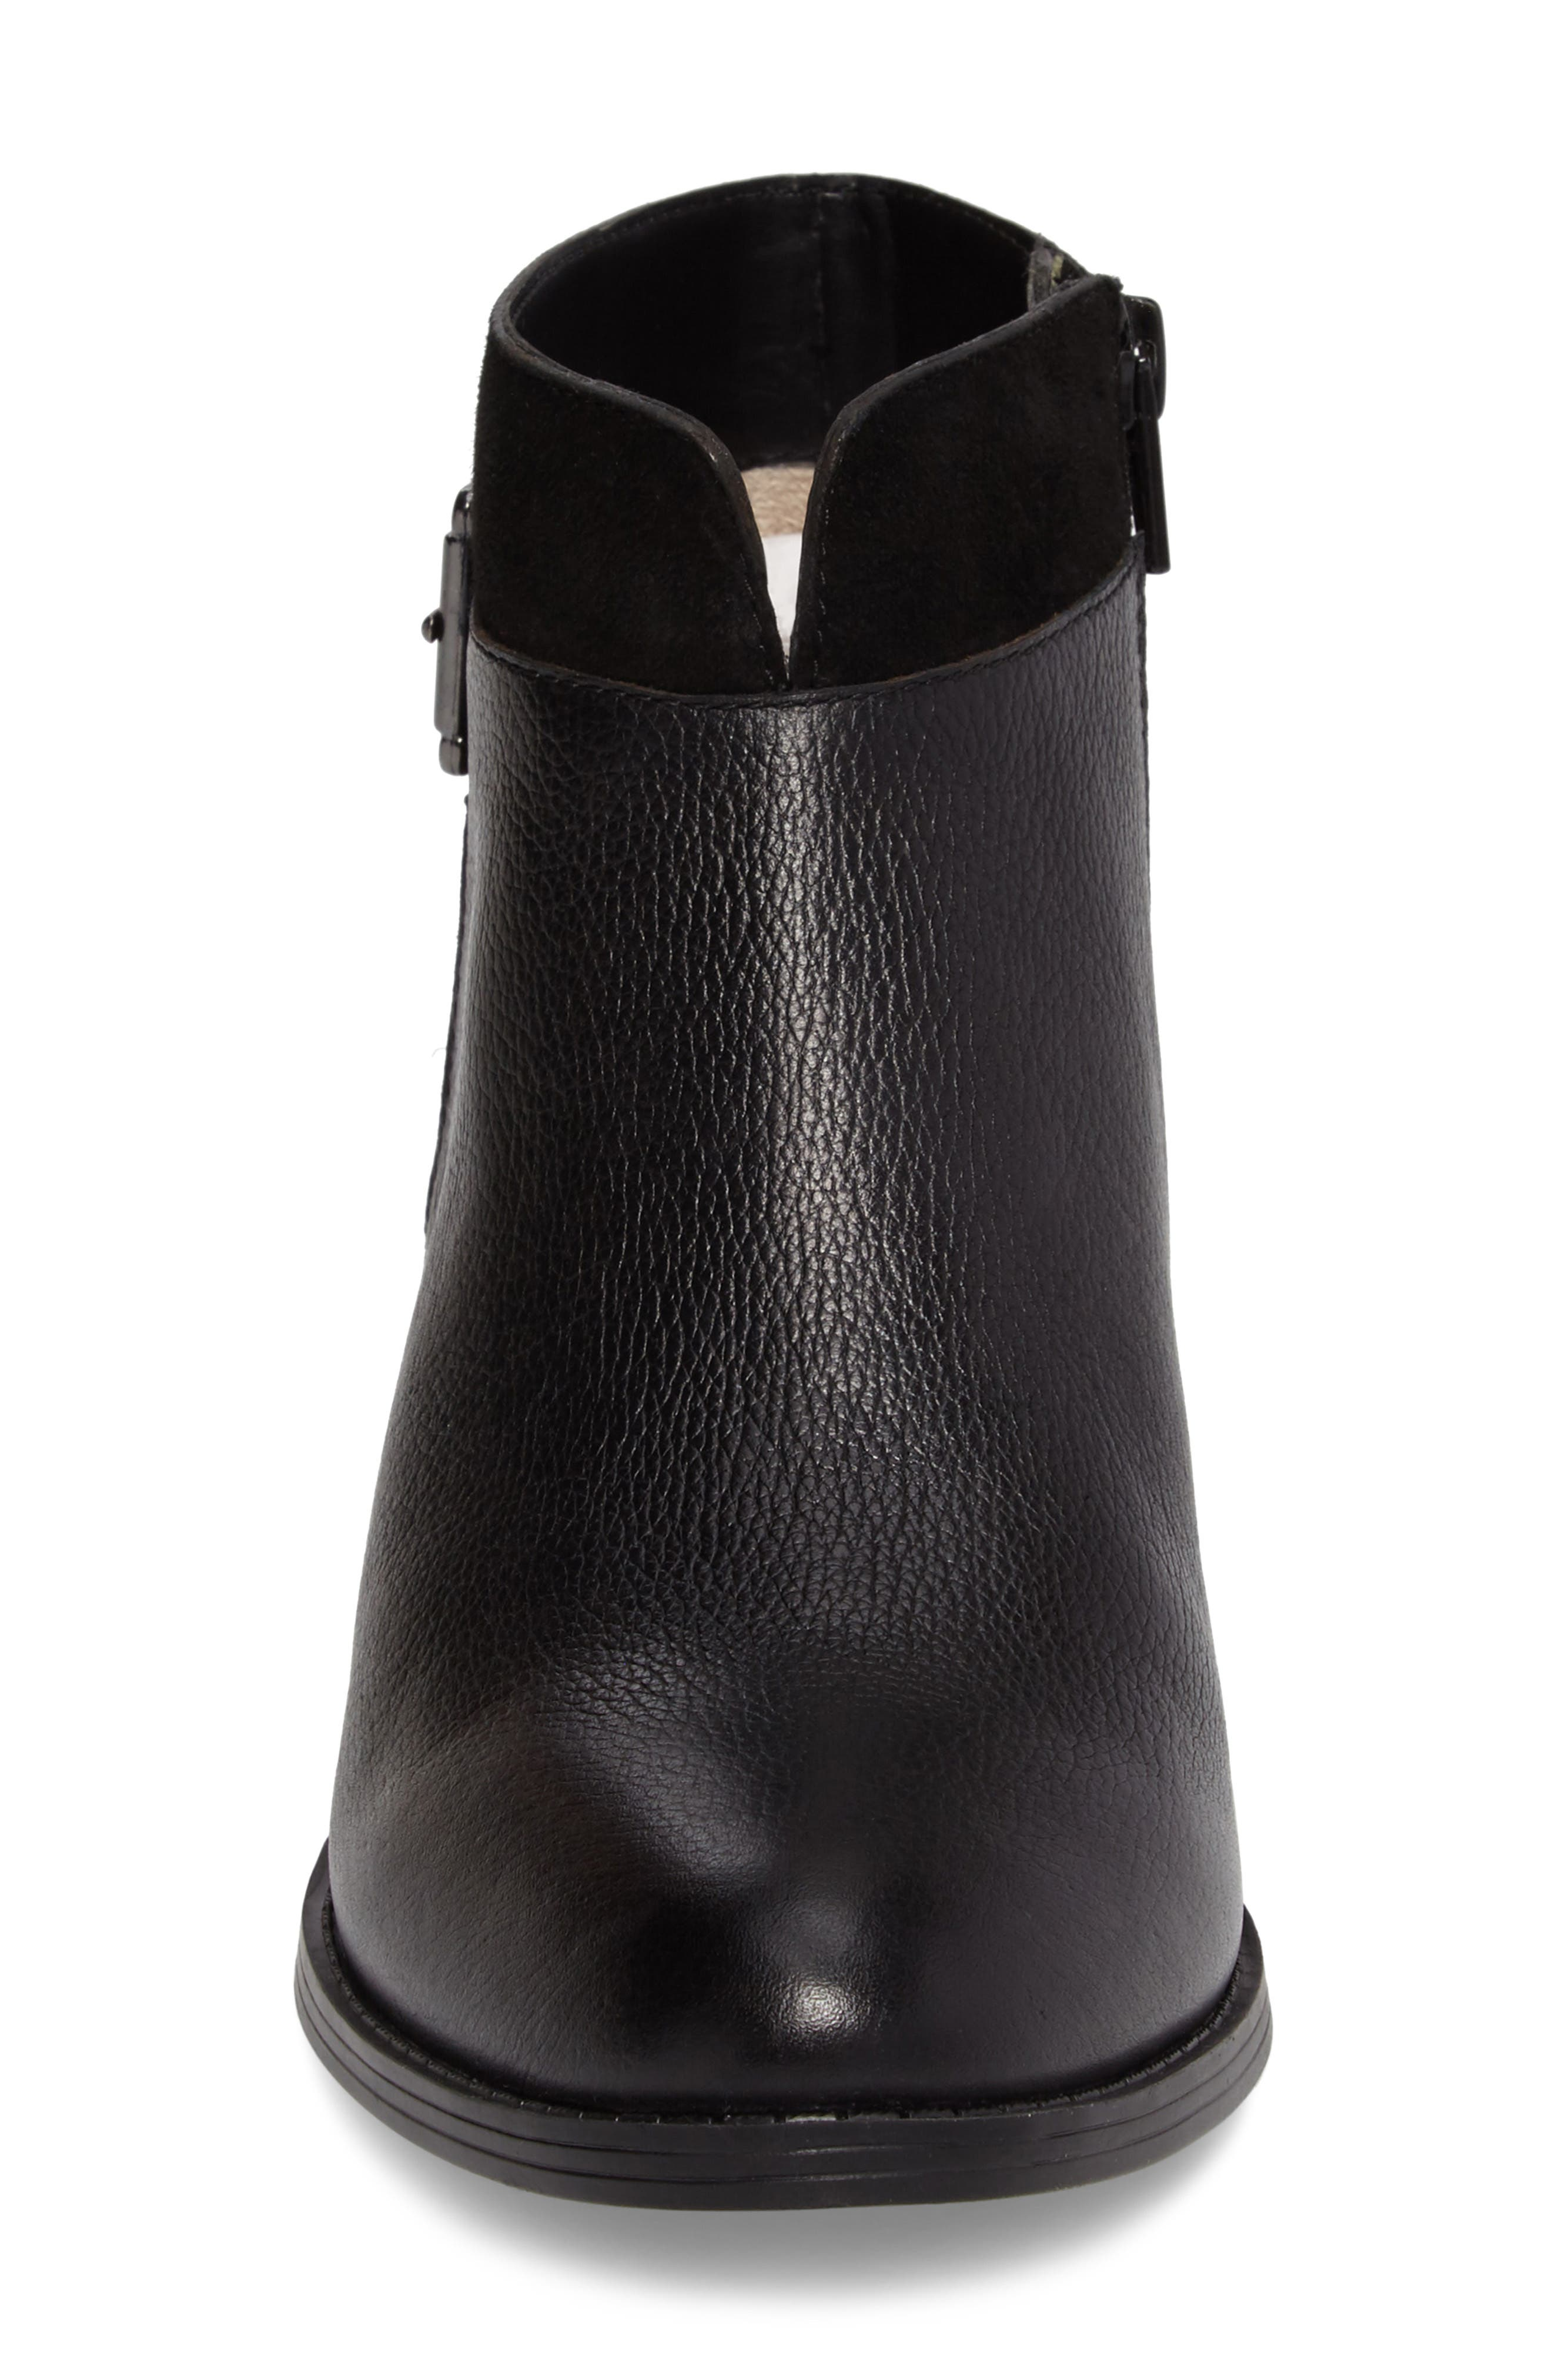 Wanya Buckle Bootie,                             Alternate thumbnail 4, color,                             Black Leather